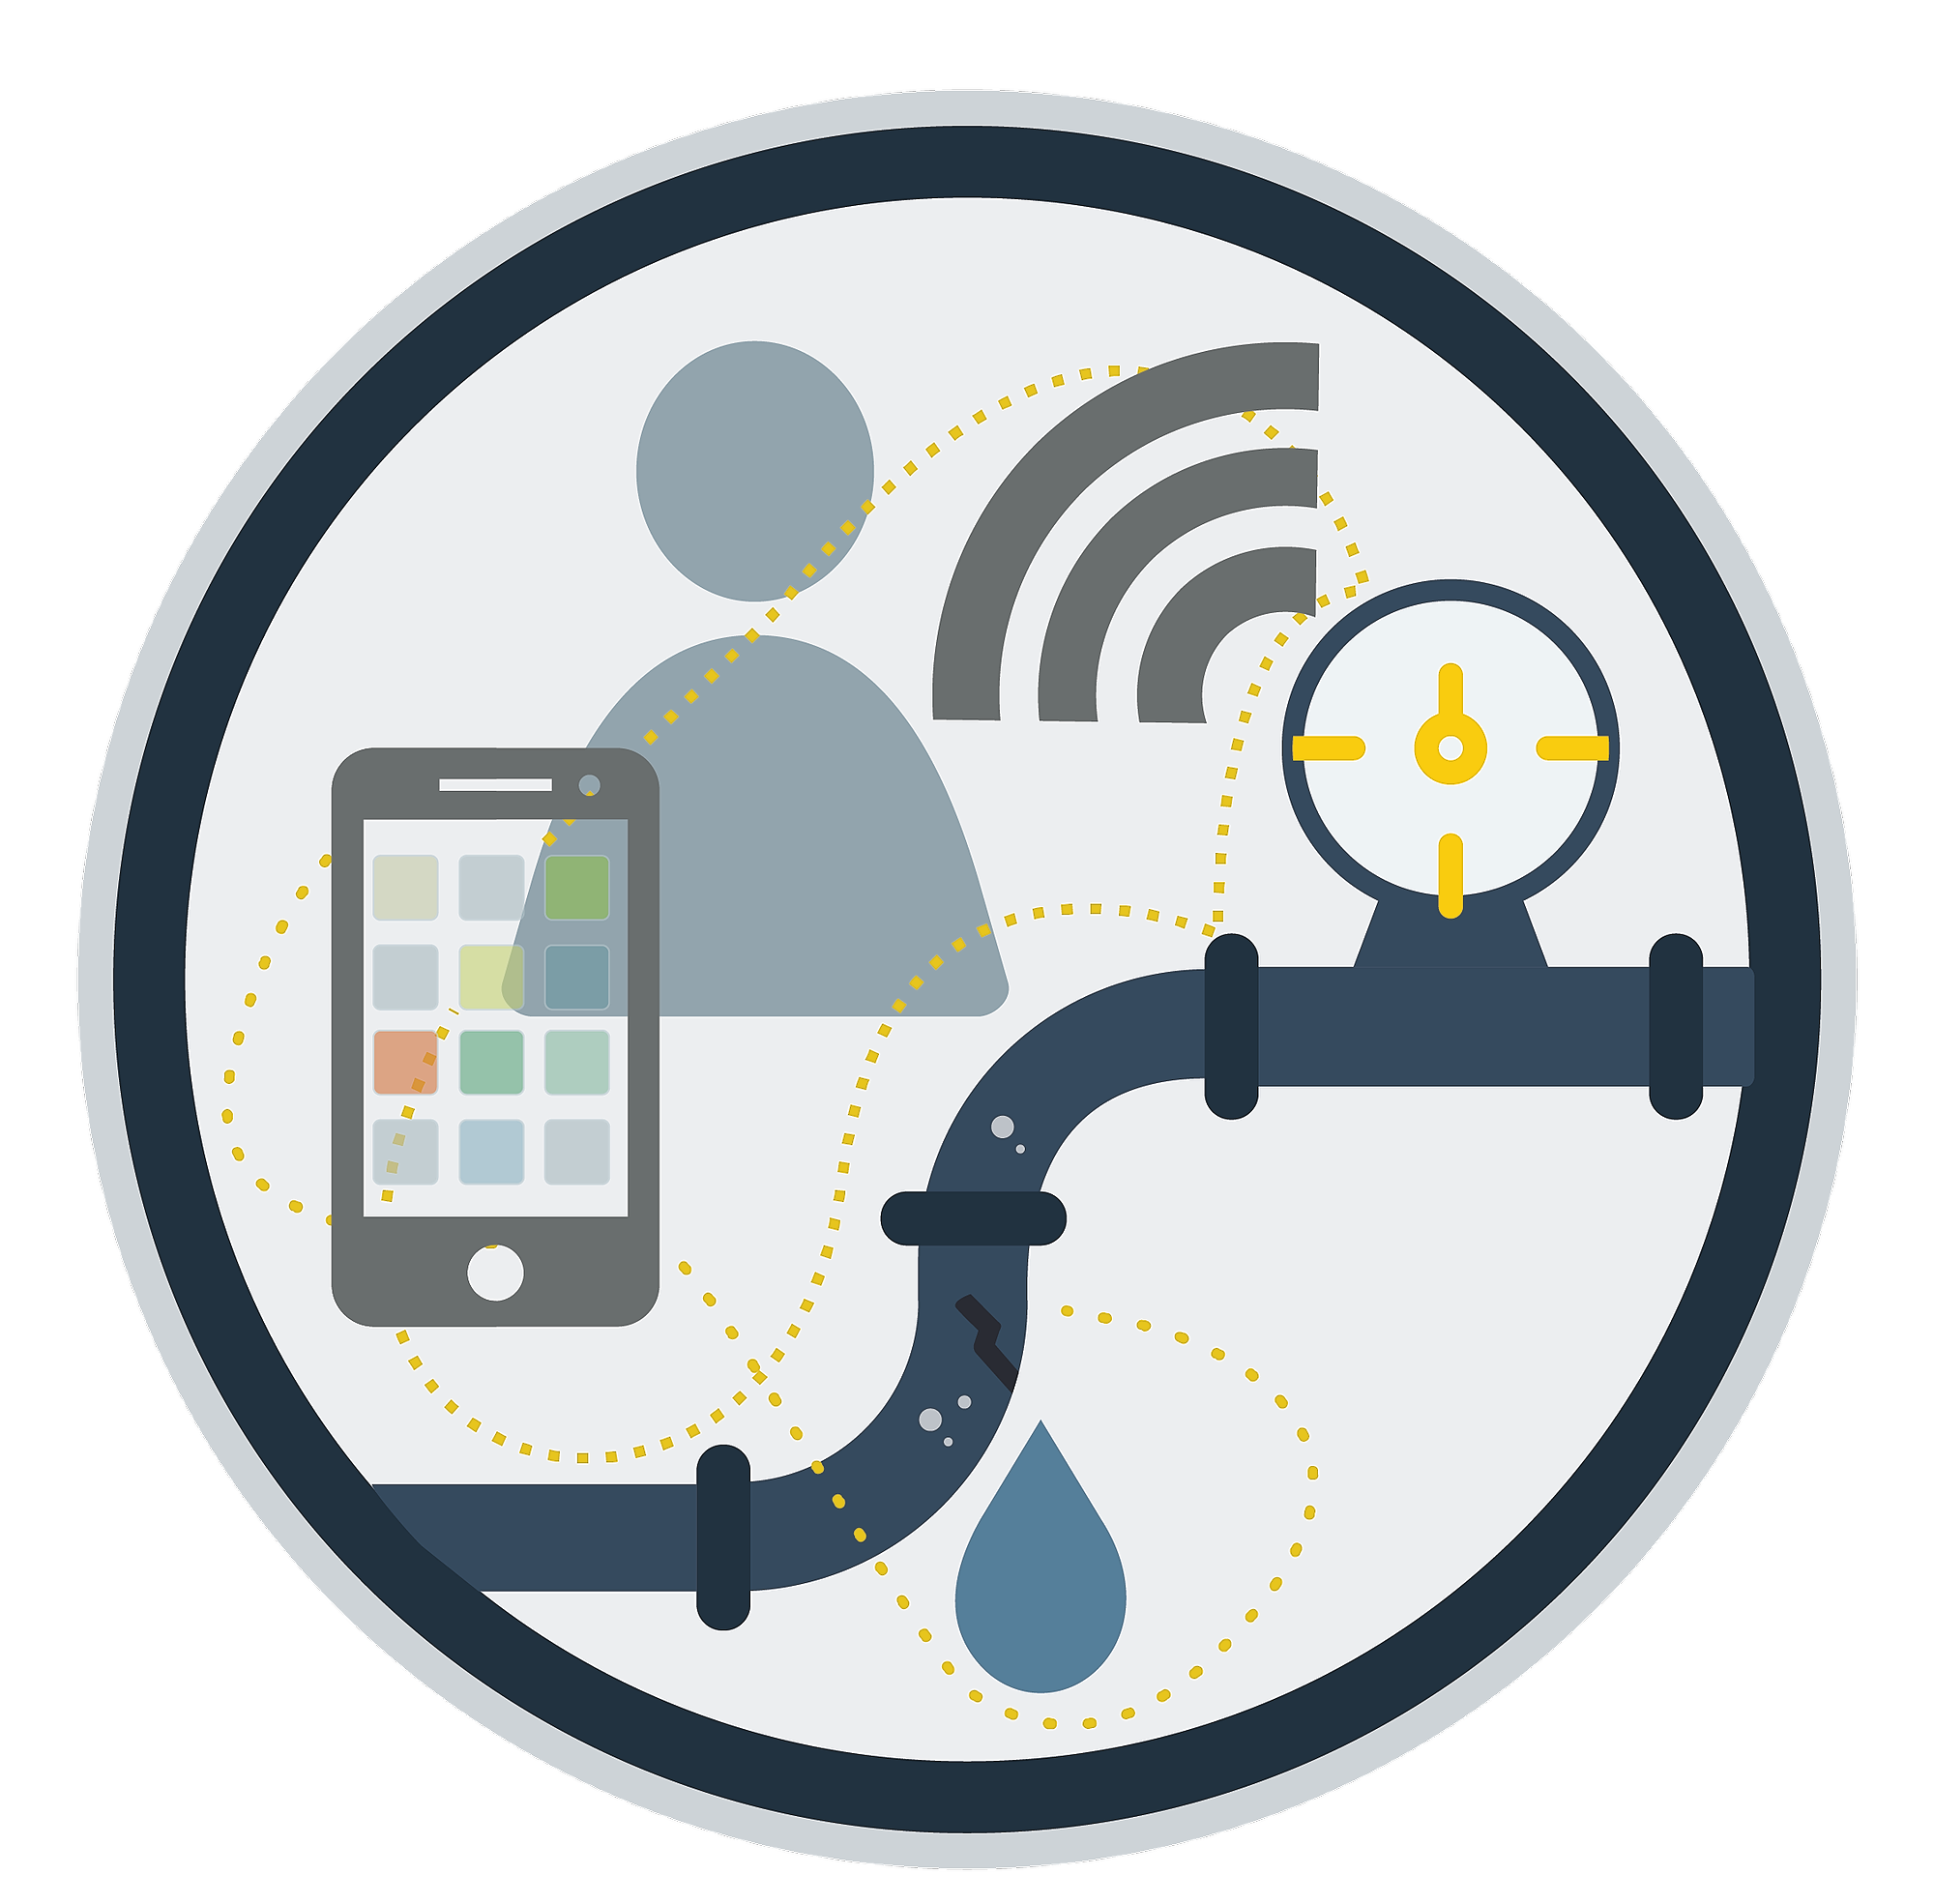 ICT4WASH310: Mobile Money Payments for Utility Service Providers